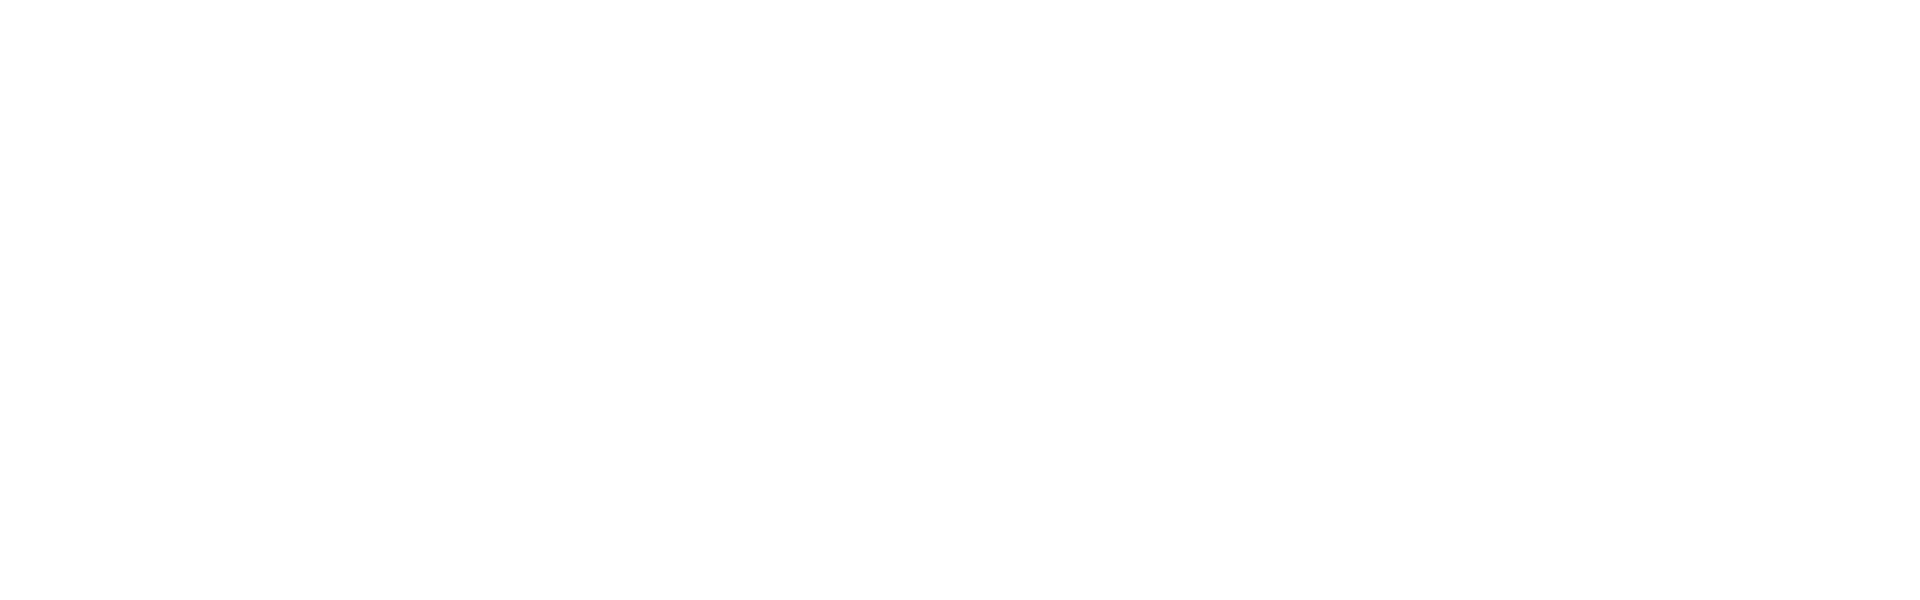 Realize Live and U2U Logo